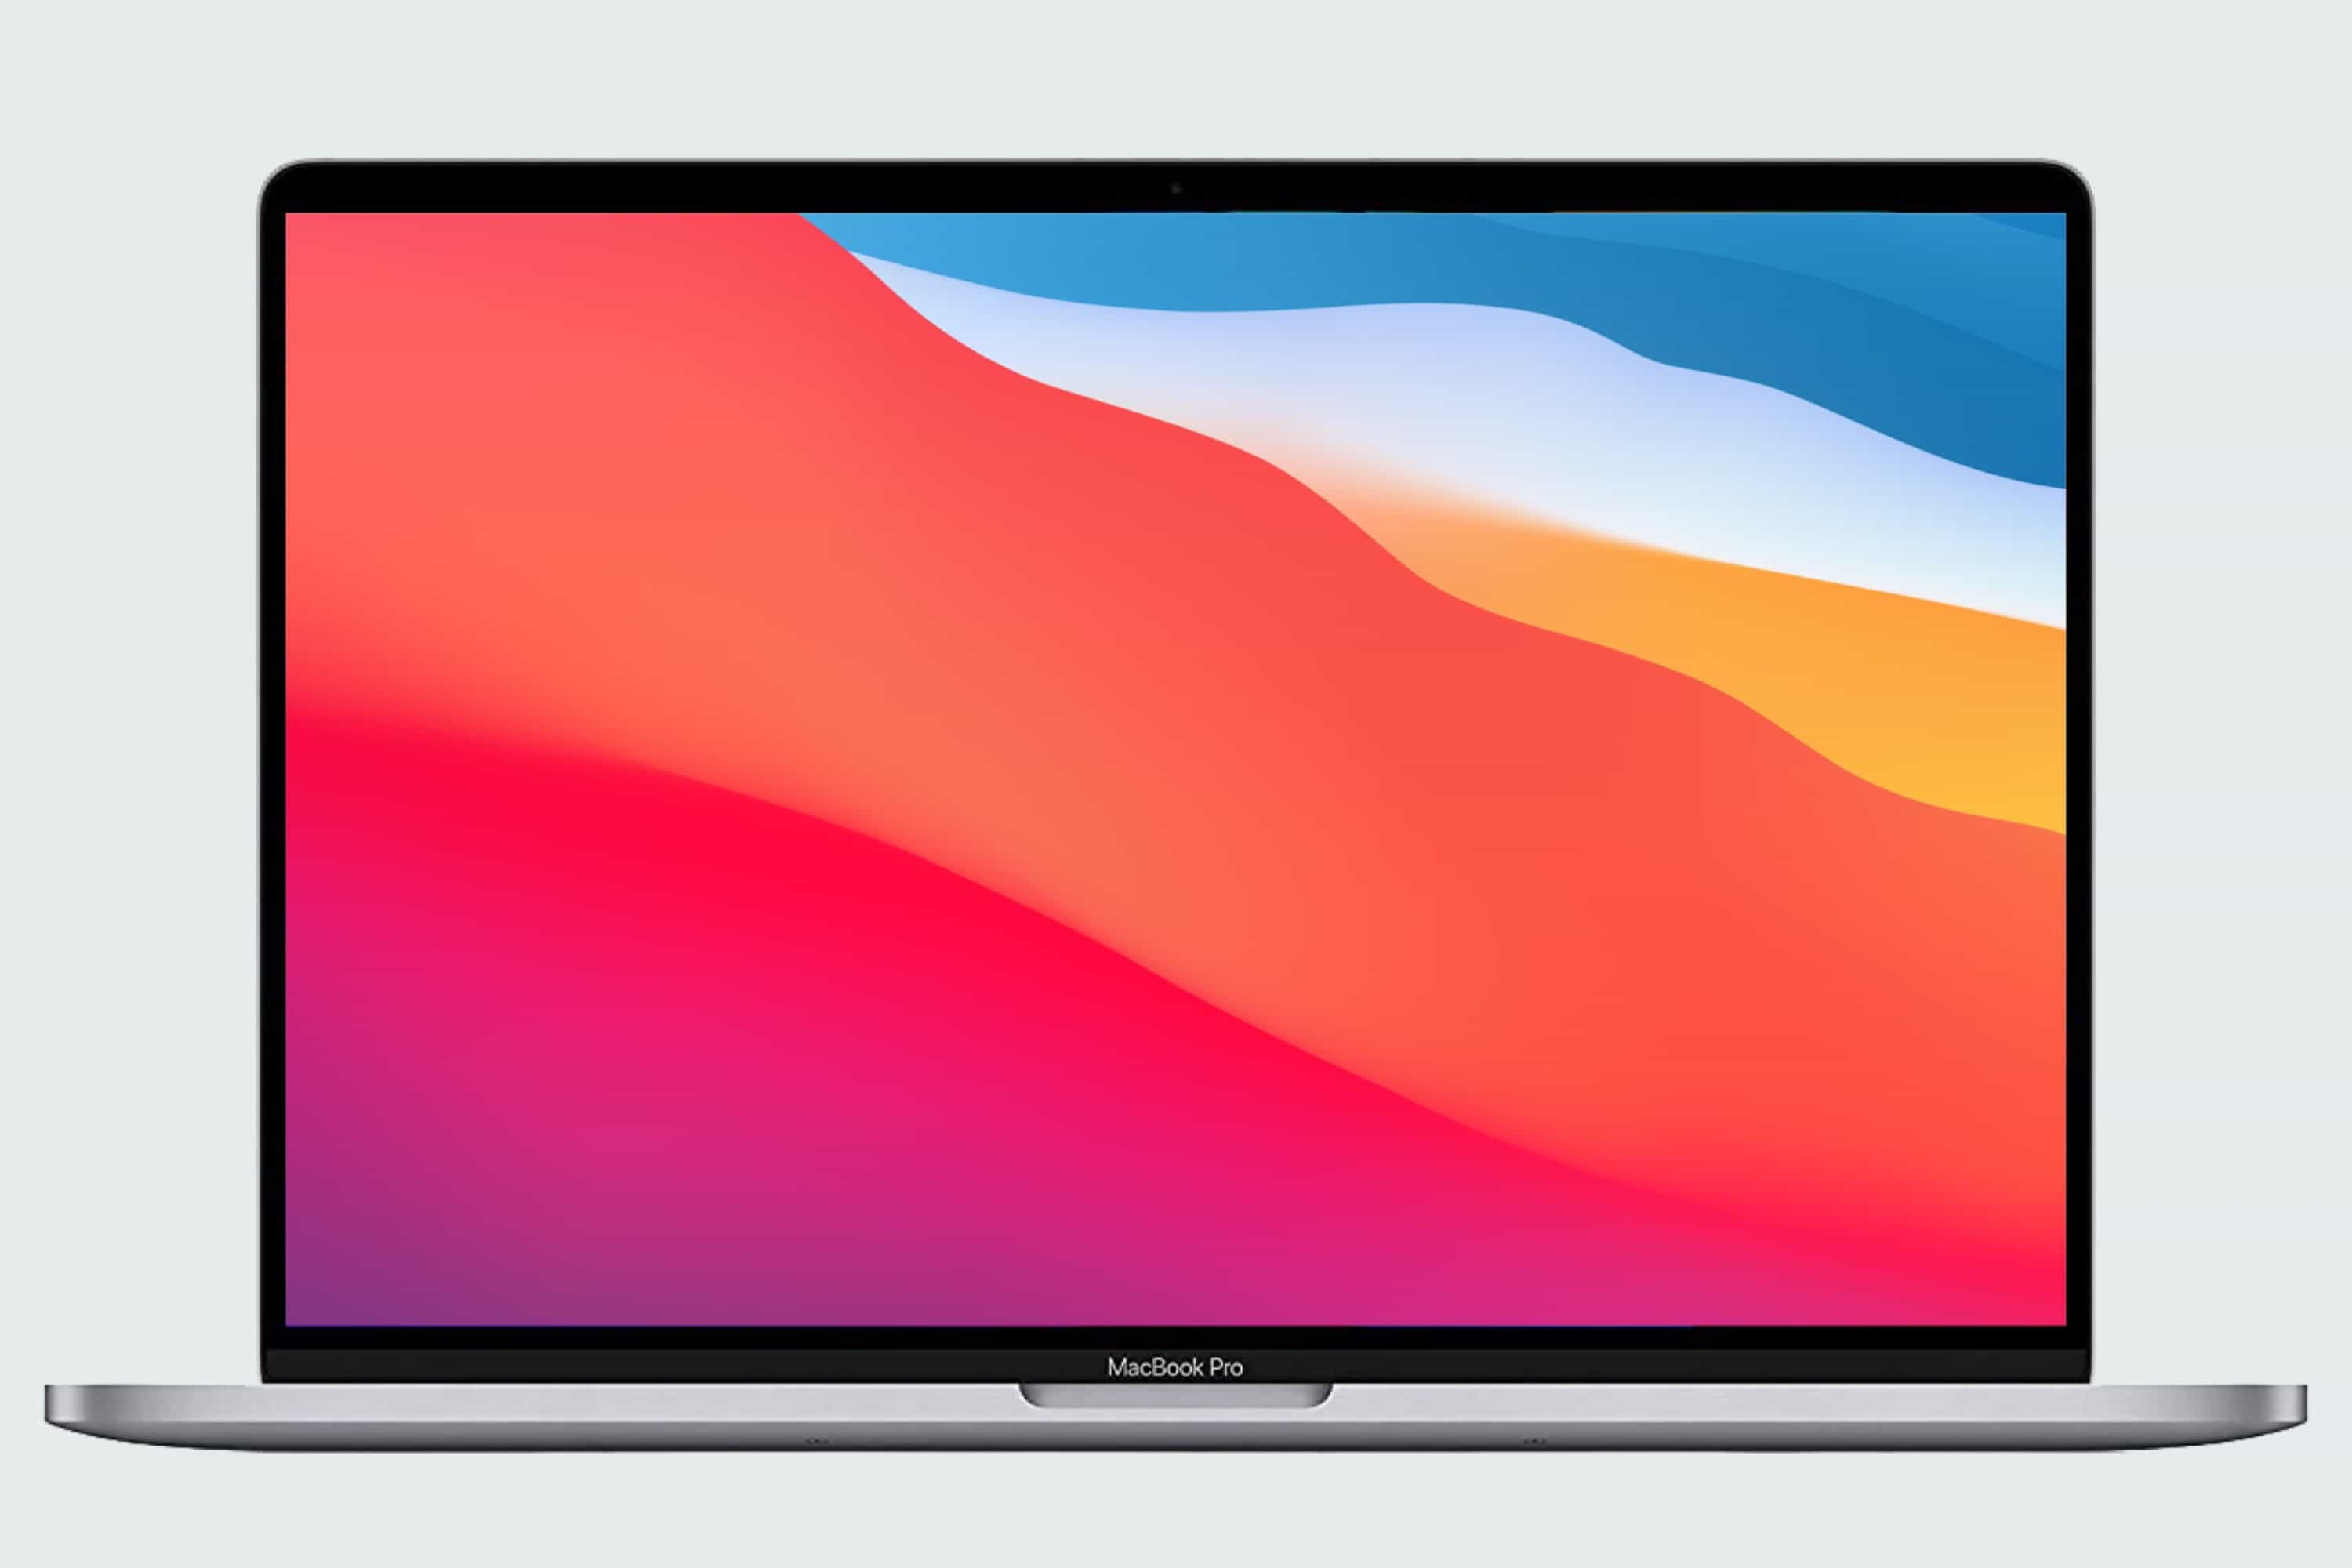 apple-silicon-and-intel-macbooks-with-updated-designs-rumored-for-late-2021-20201125-1